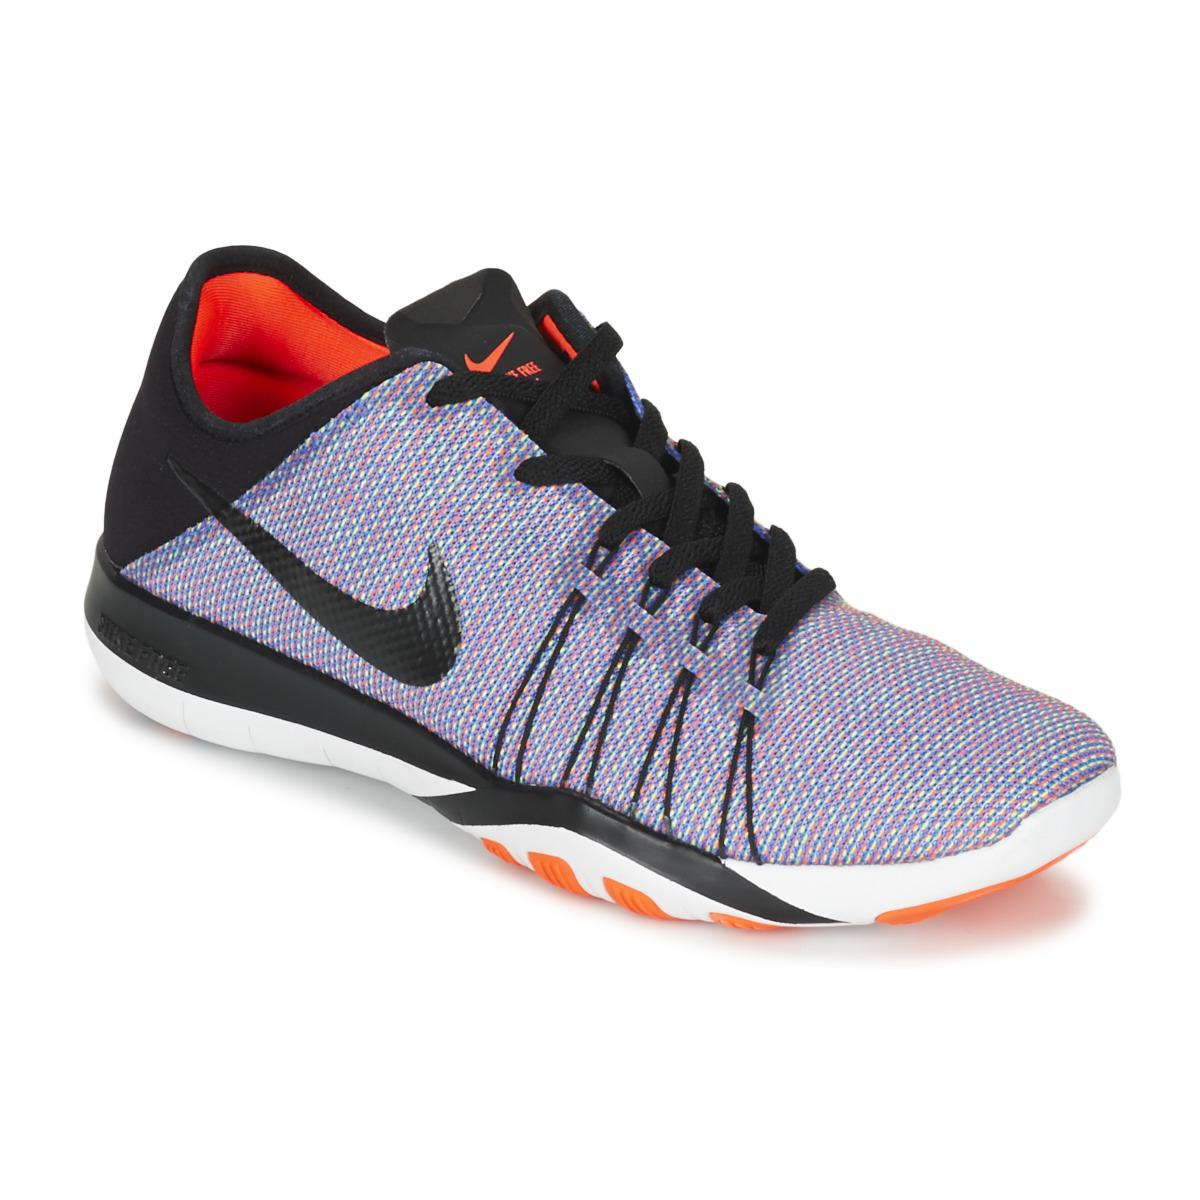 new style 9d6ed 816d0 netherlands nike free 5.0 tr flyknit bright citrus black pink womens  trainer size uk 6 youtube 23c50 a4c46  uk nike free trainer 6 print w womens  trainers ...